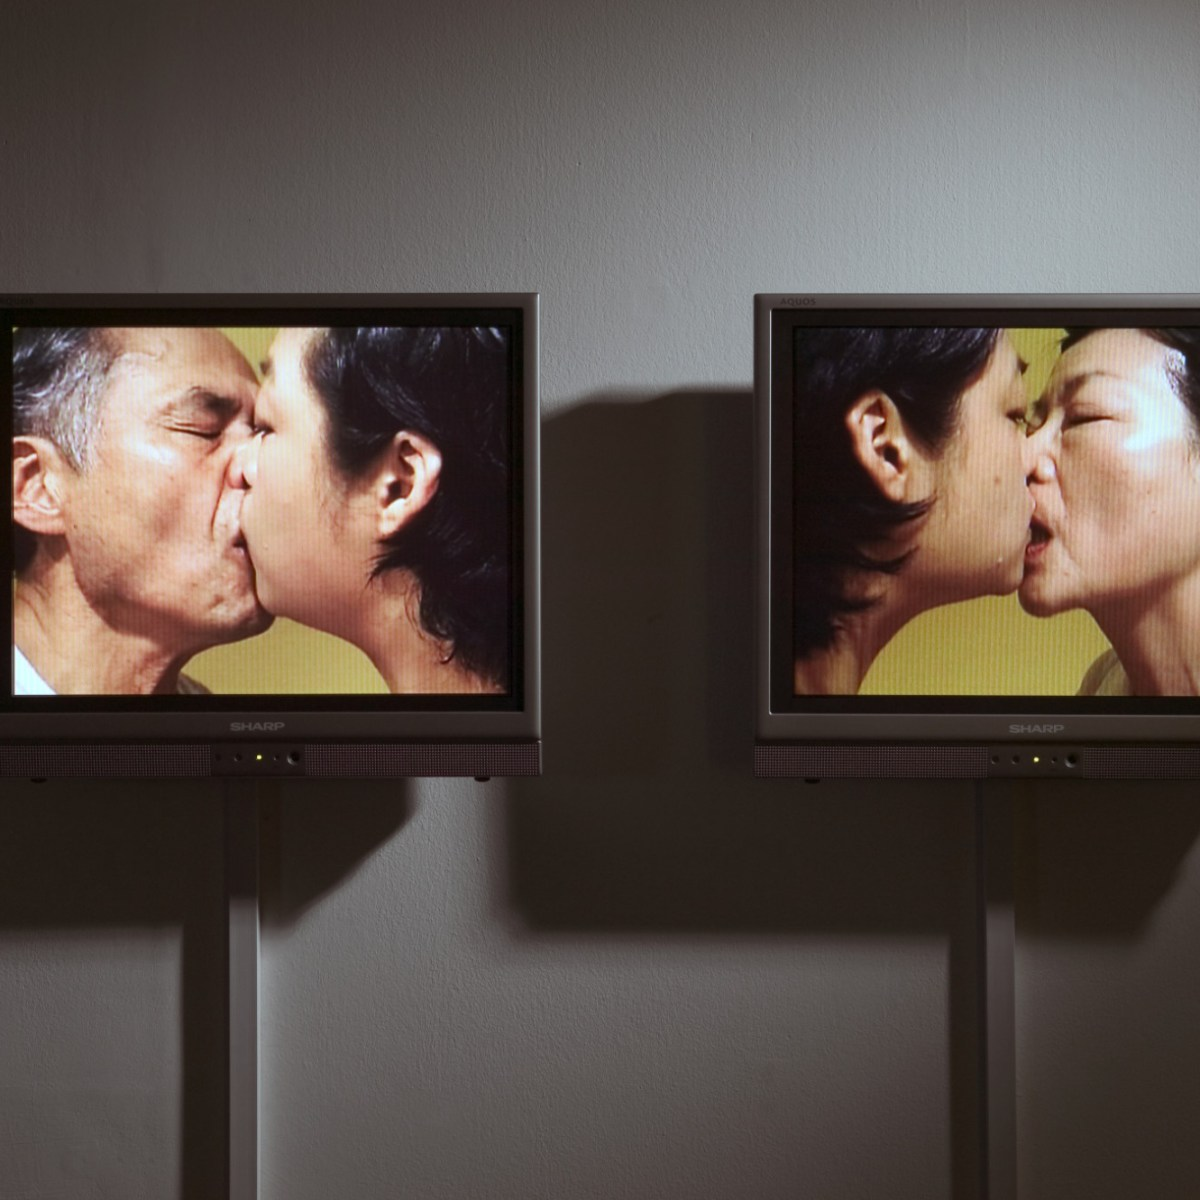 An installation view of two video screens mounted on a wall. The left screen shows a man and a woman kissing in front of a yellow background. The right screen shows two women kissing in front of a yellow background.